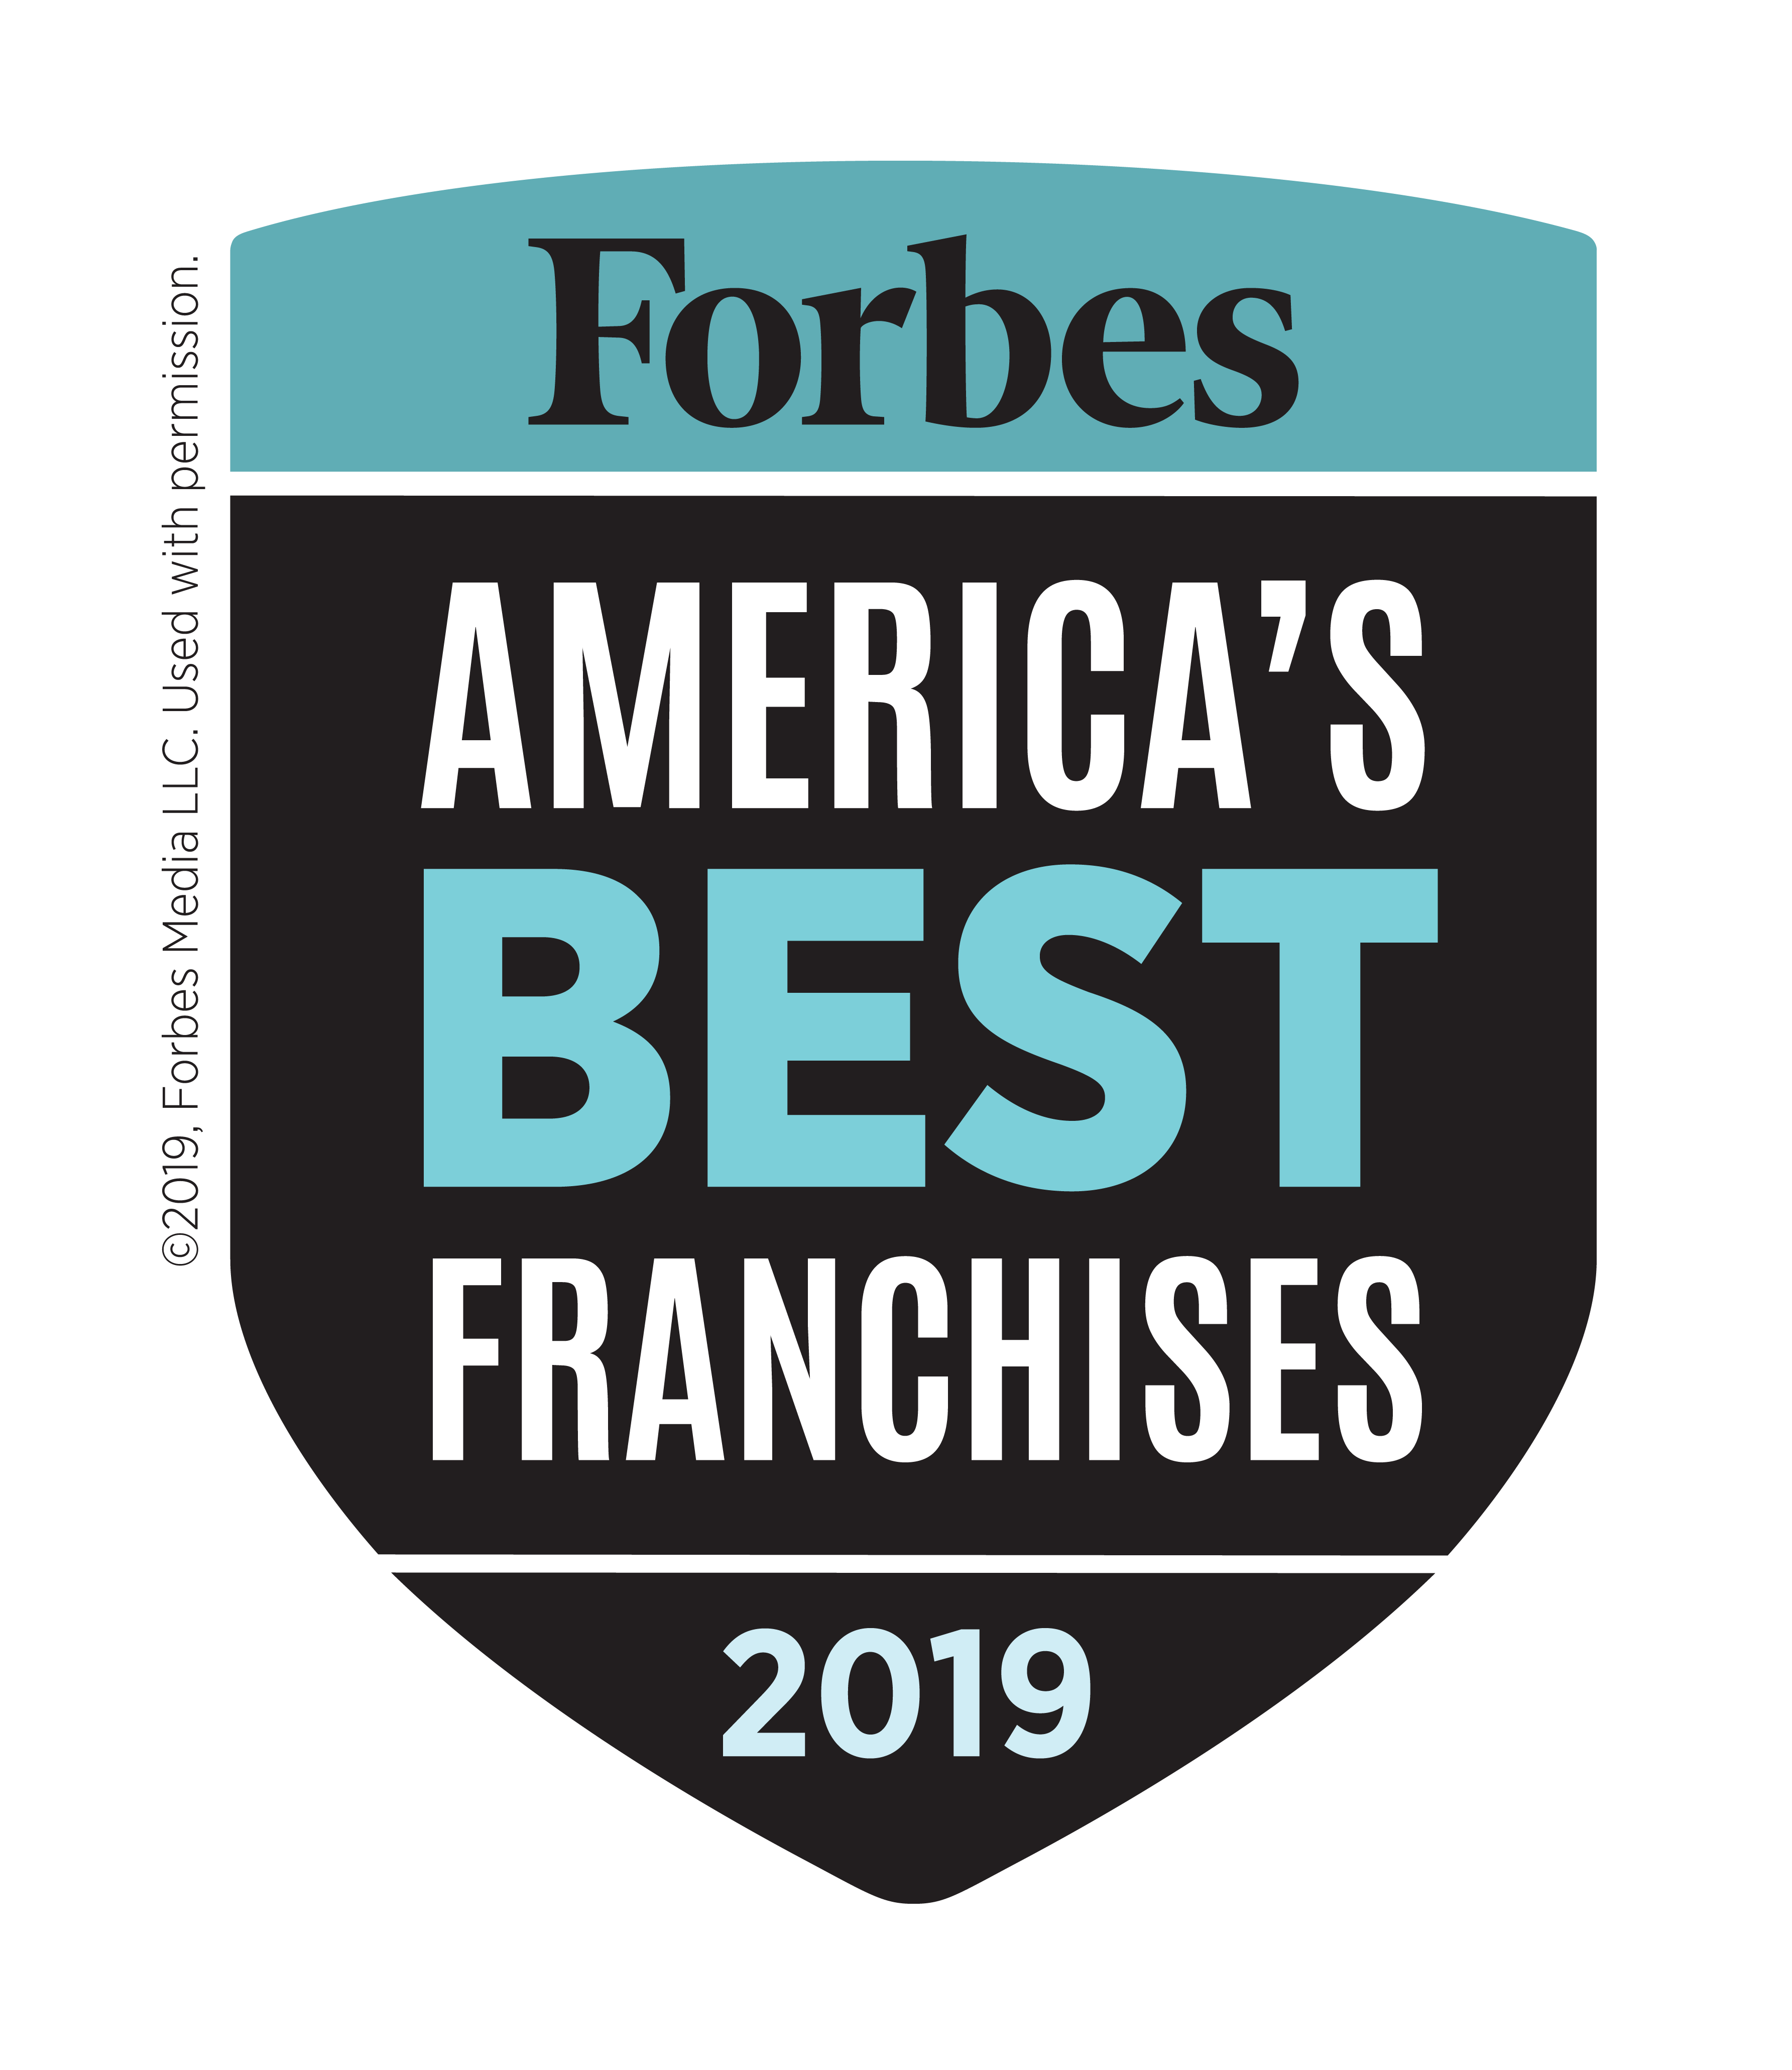 forbes best franchises 2019 Mathnasium Ranks No. 2 on 2019 Forbes